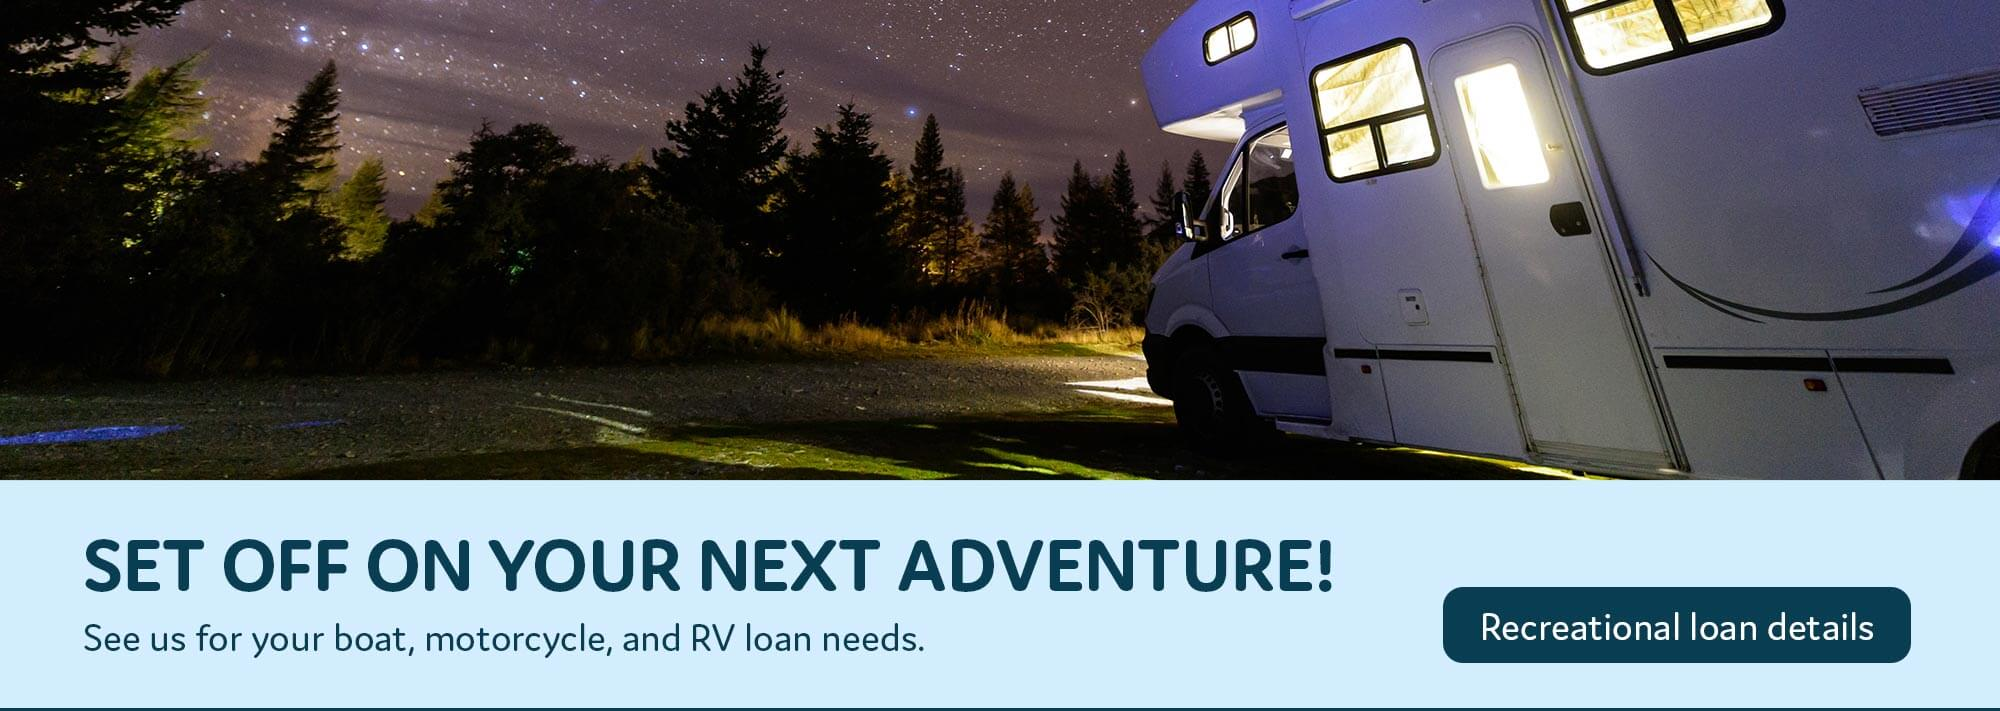 Set off on your next adventure! See us for your boat, motorcycle, and RV Loans. Recreational loans details.